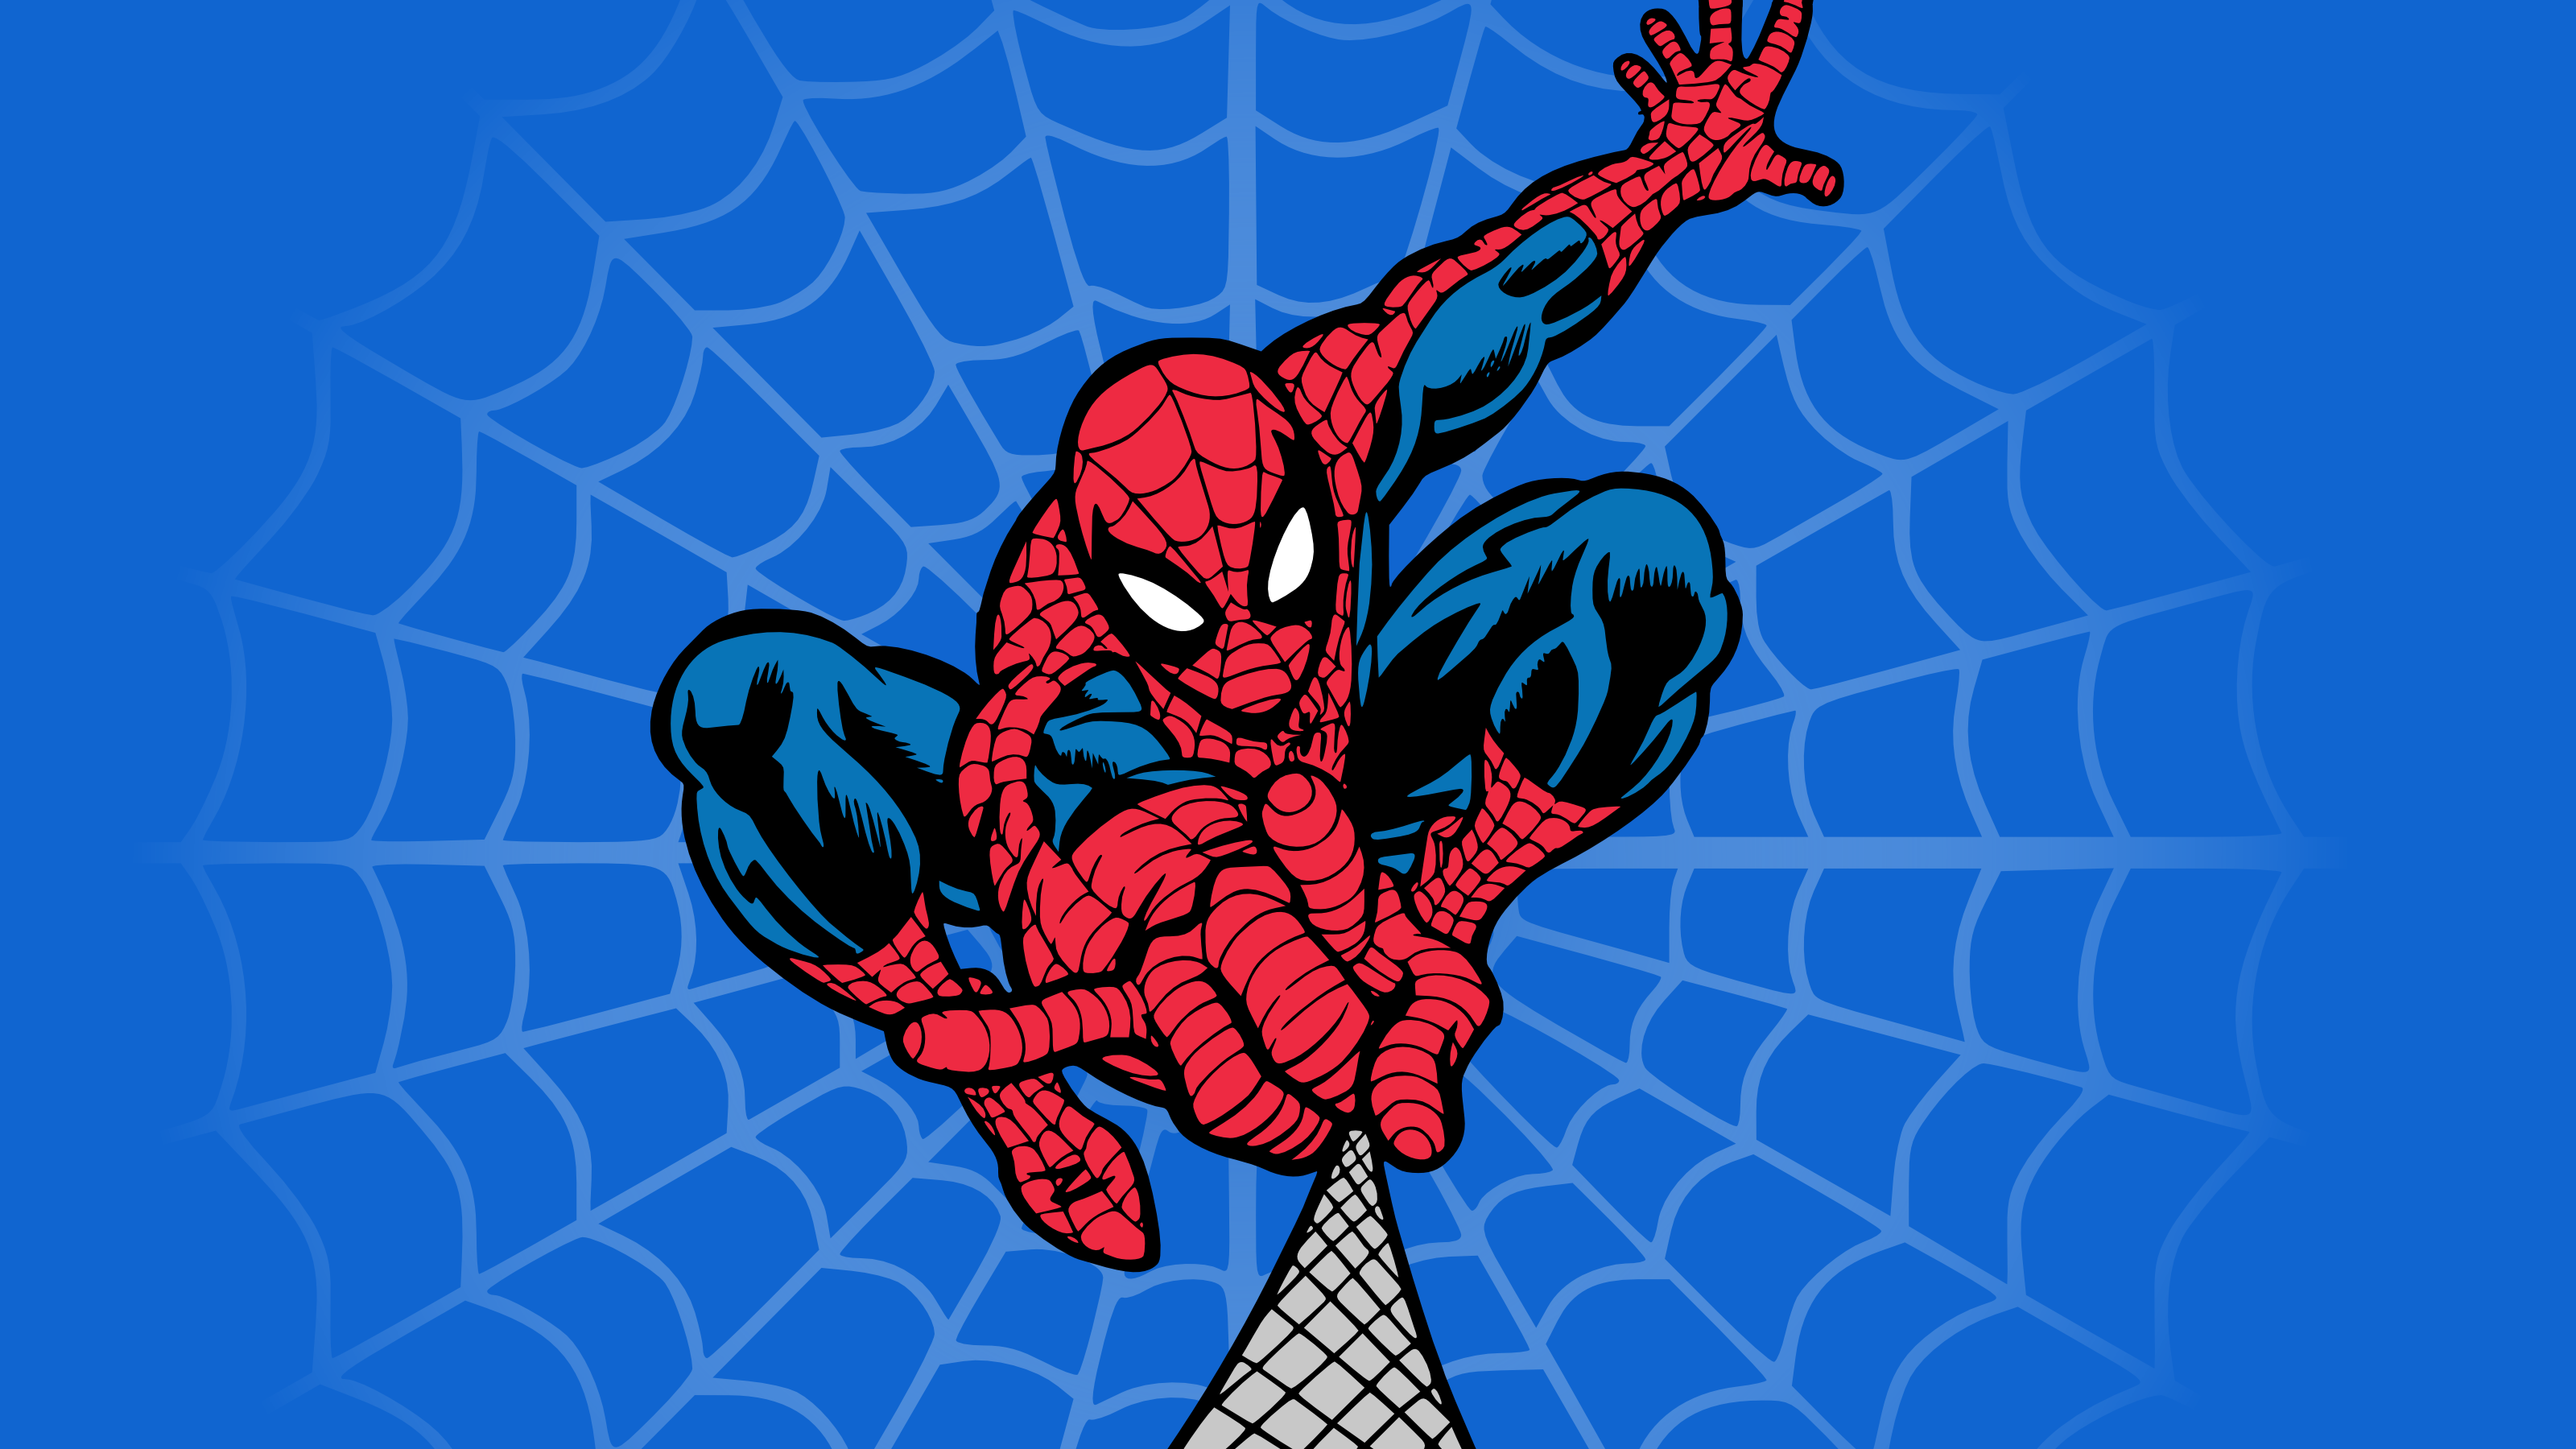 http://vignette4.wikia.nocookie.net/spiderman/images/f/f0/Wikia-Visualization-Main.png/revision/20131218010137